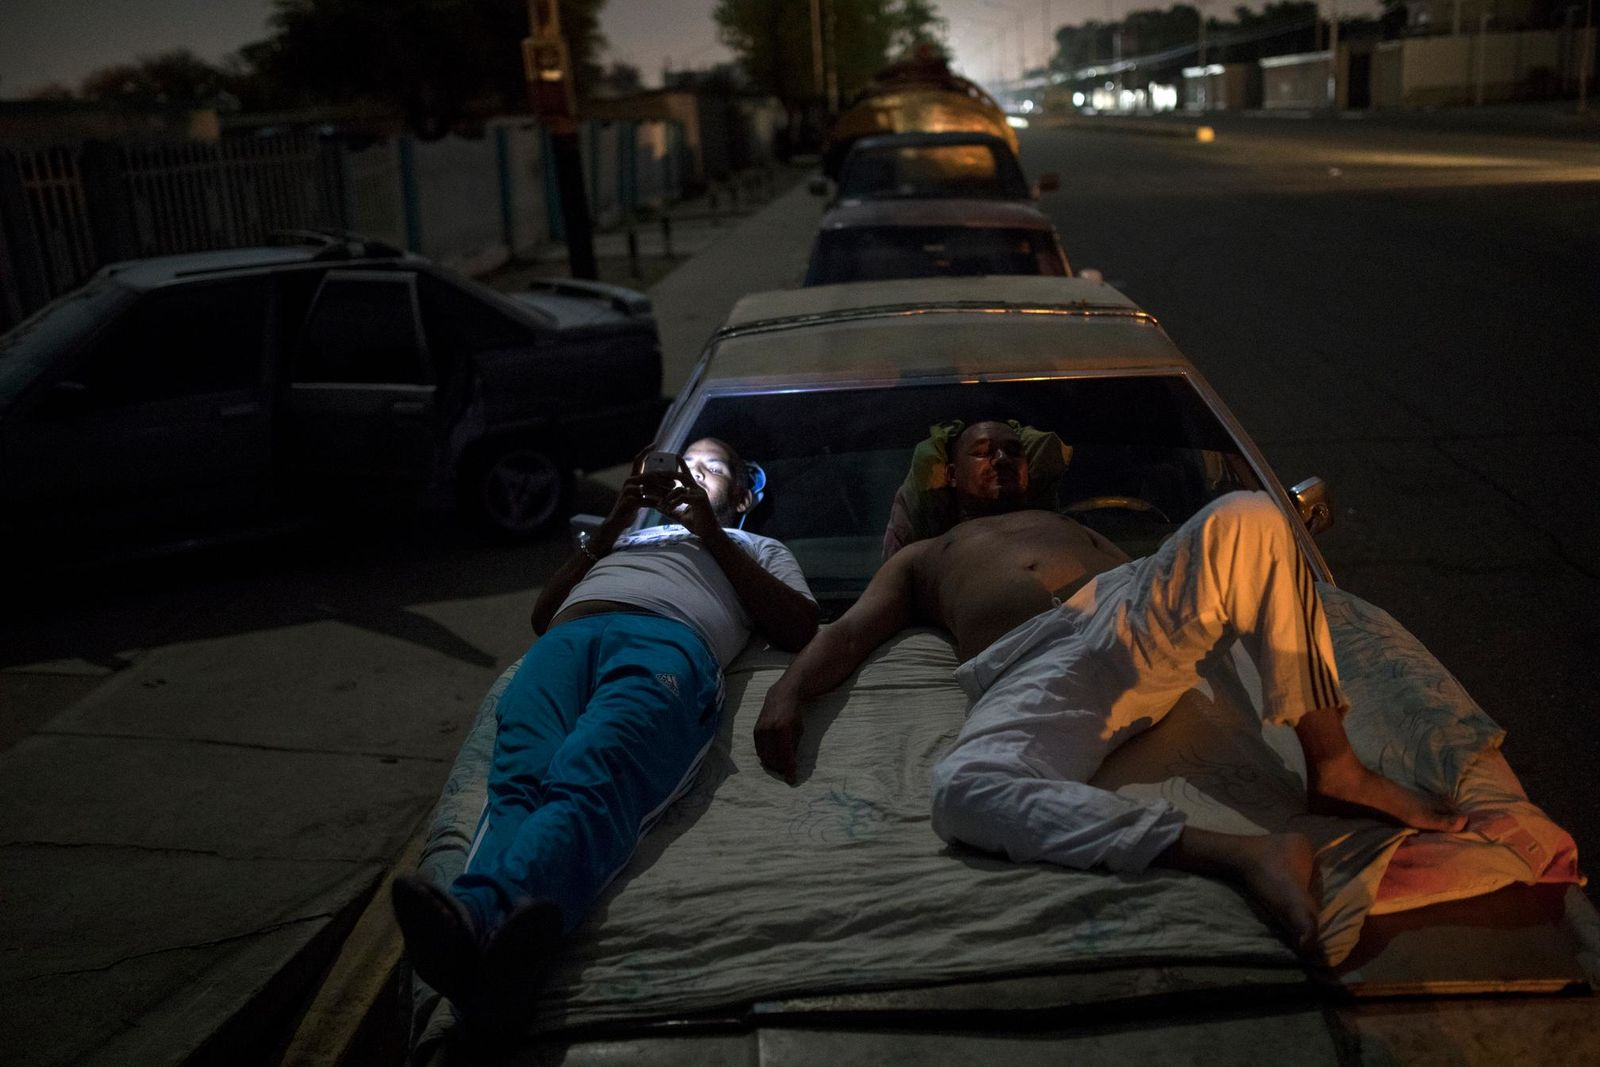 Andres Quintero, left, and Fermin Perez rest on top of Perez's car as they wait in line for over 20 hours to fill their tanks with gas in Cabimas, Venezuela, Thursday, May 16, 2019. (AP Photo/Rodrigo Abd)